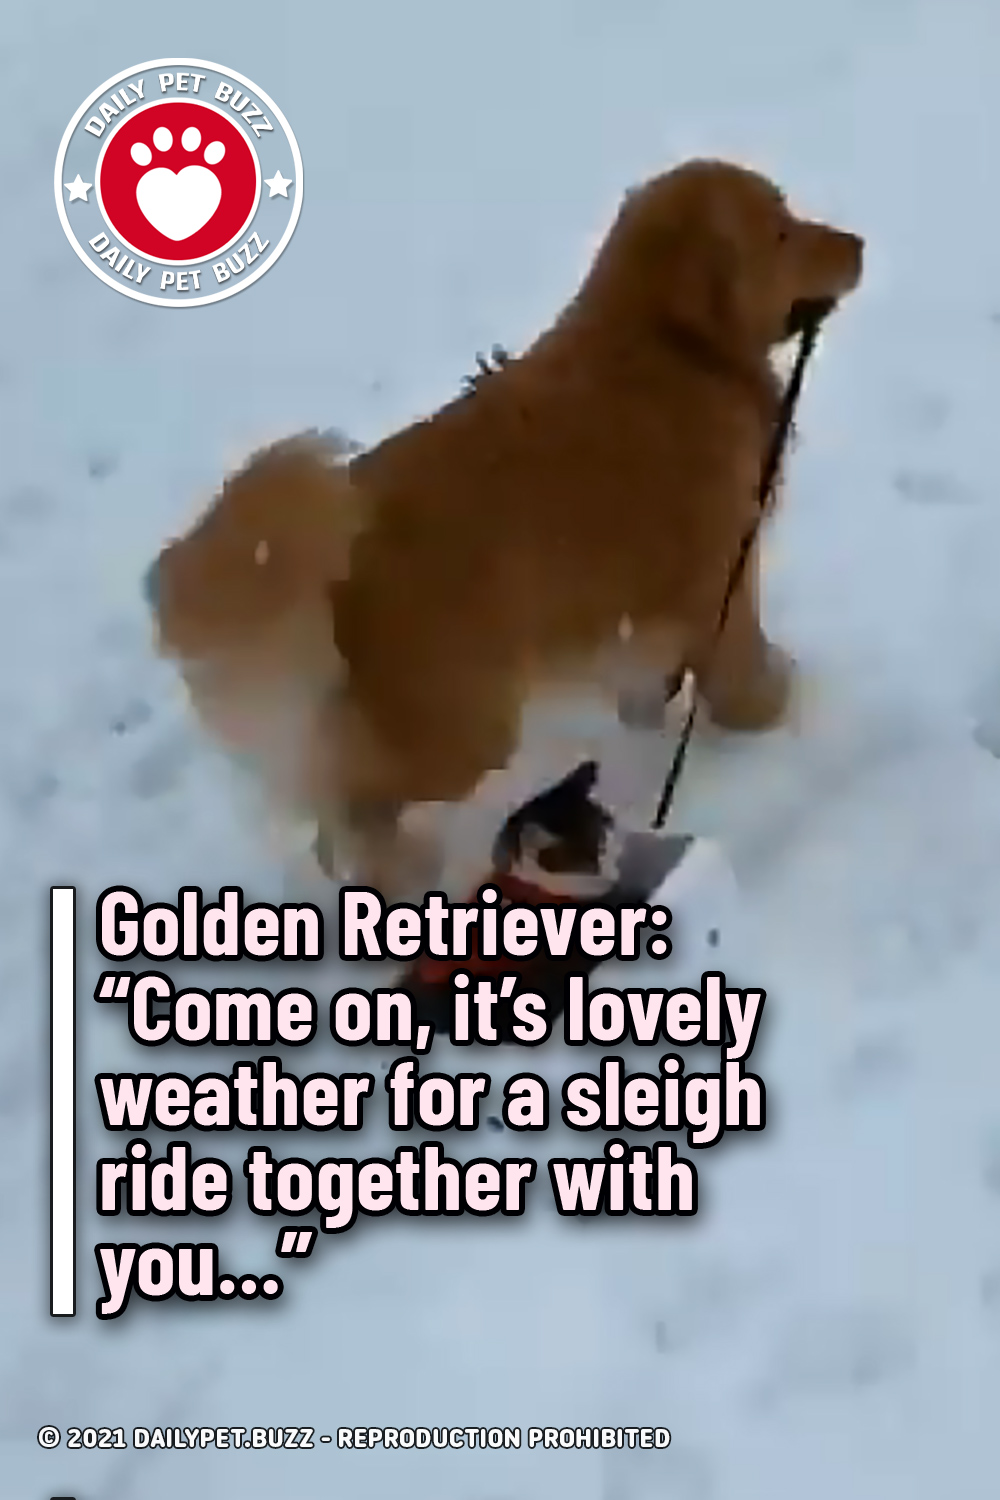 """Golden Retriever: """"Come on, it\'s lovely weather for a sleigh ride together with you…"""""""